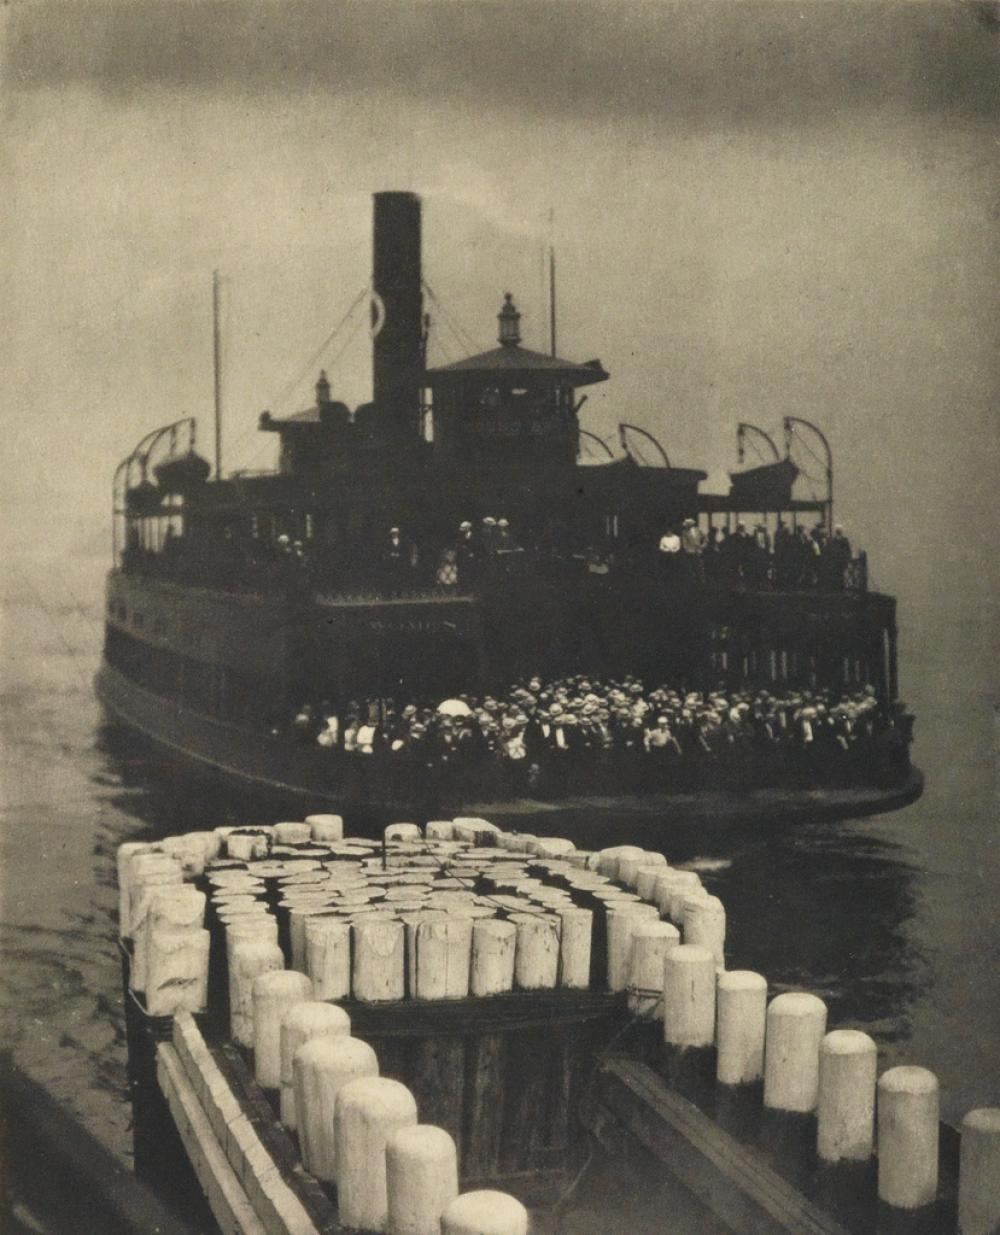 ALFRED STIEGLITZ (1864-1946) The Ferry Boat * Dirigible * Snapshot: Paris, from Camera Work Number 36 (2) and Camera Work Number 41 (on